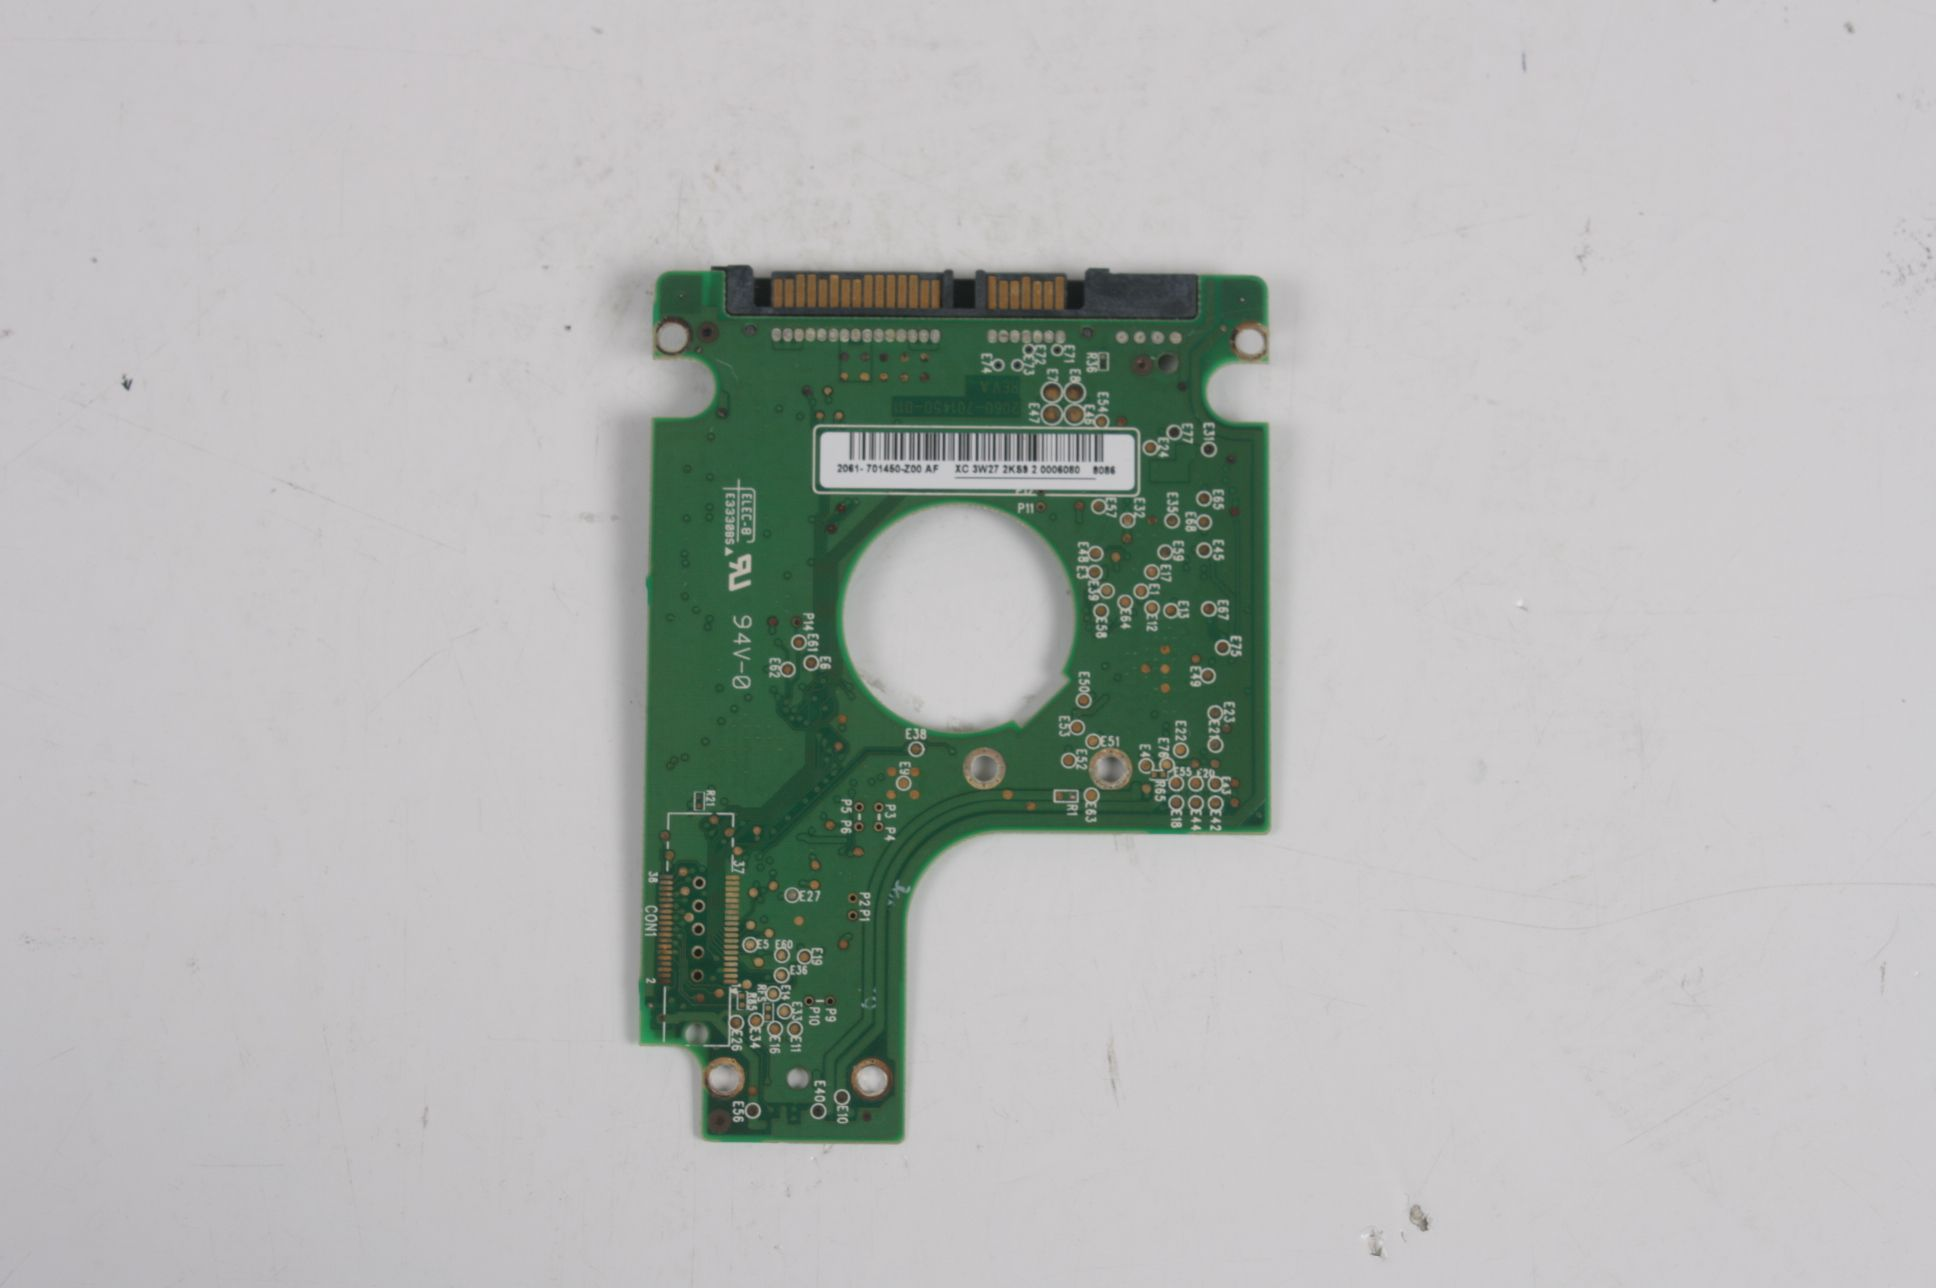 WD WD1600BEVS-22RST0 160GB SATA 2,5 HARD DRIVE / PCB (CIRCUIT BOARD) ONLY FOR DATA